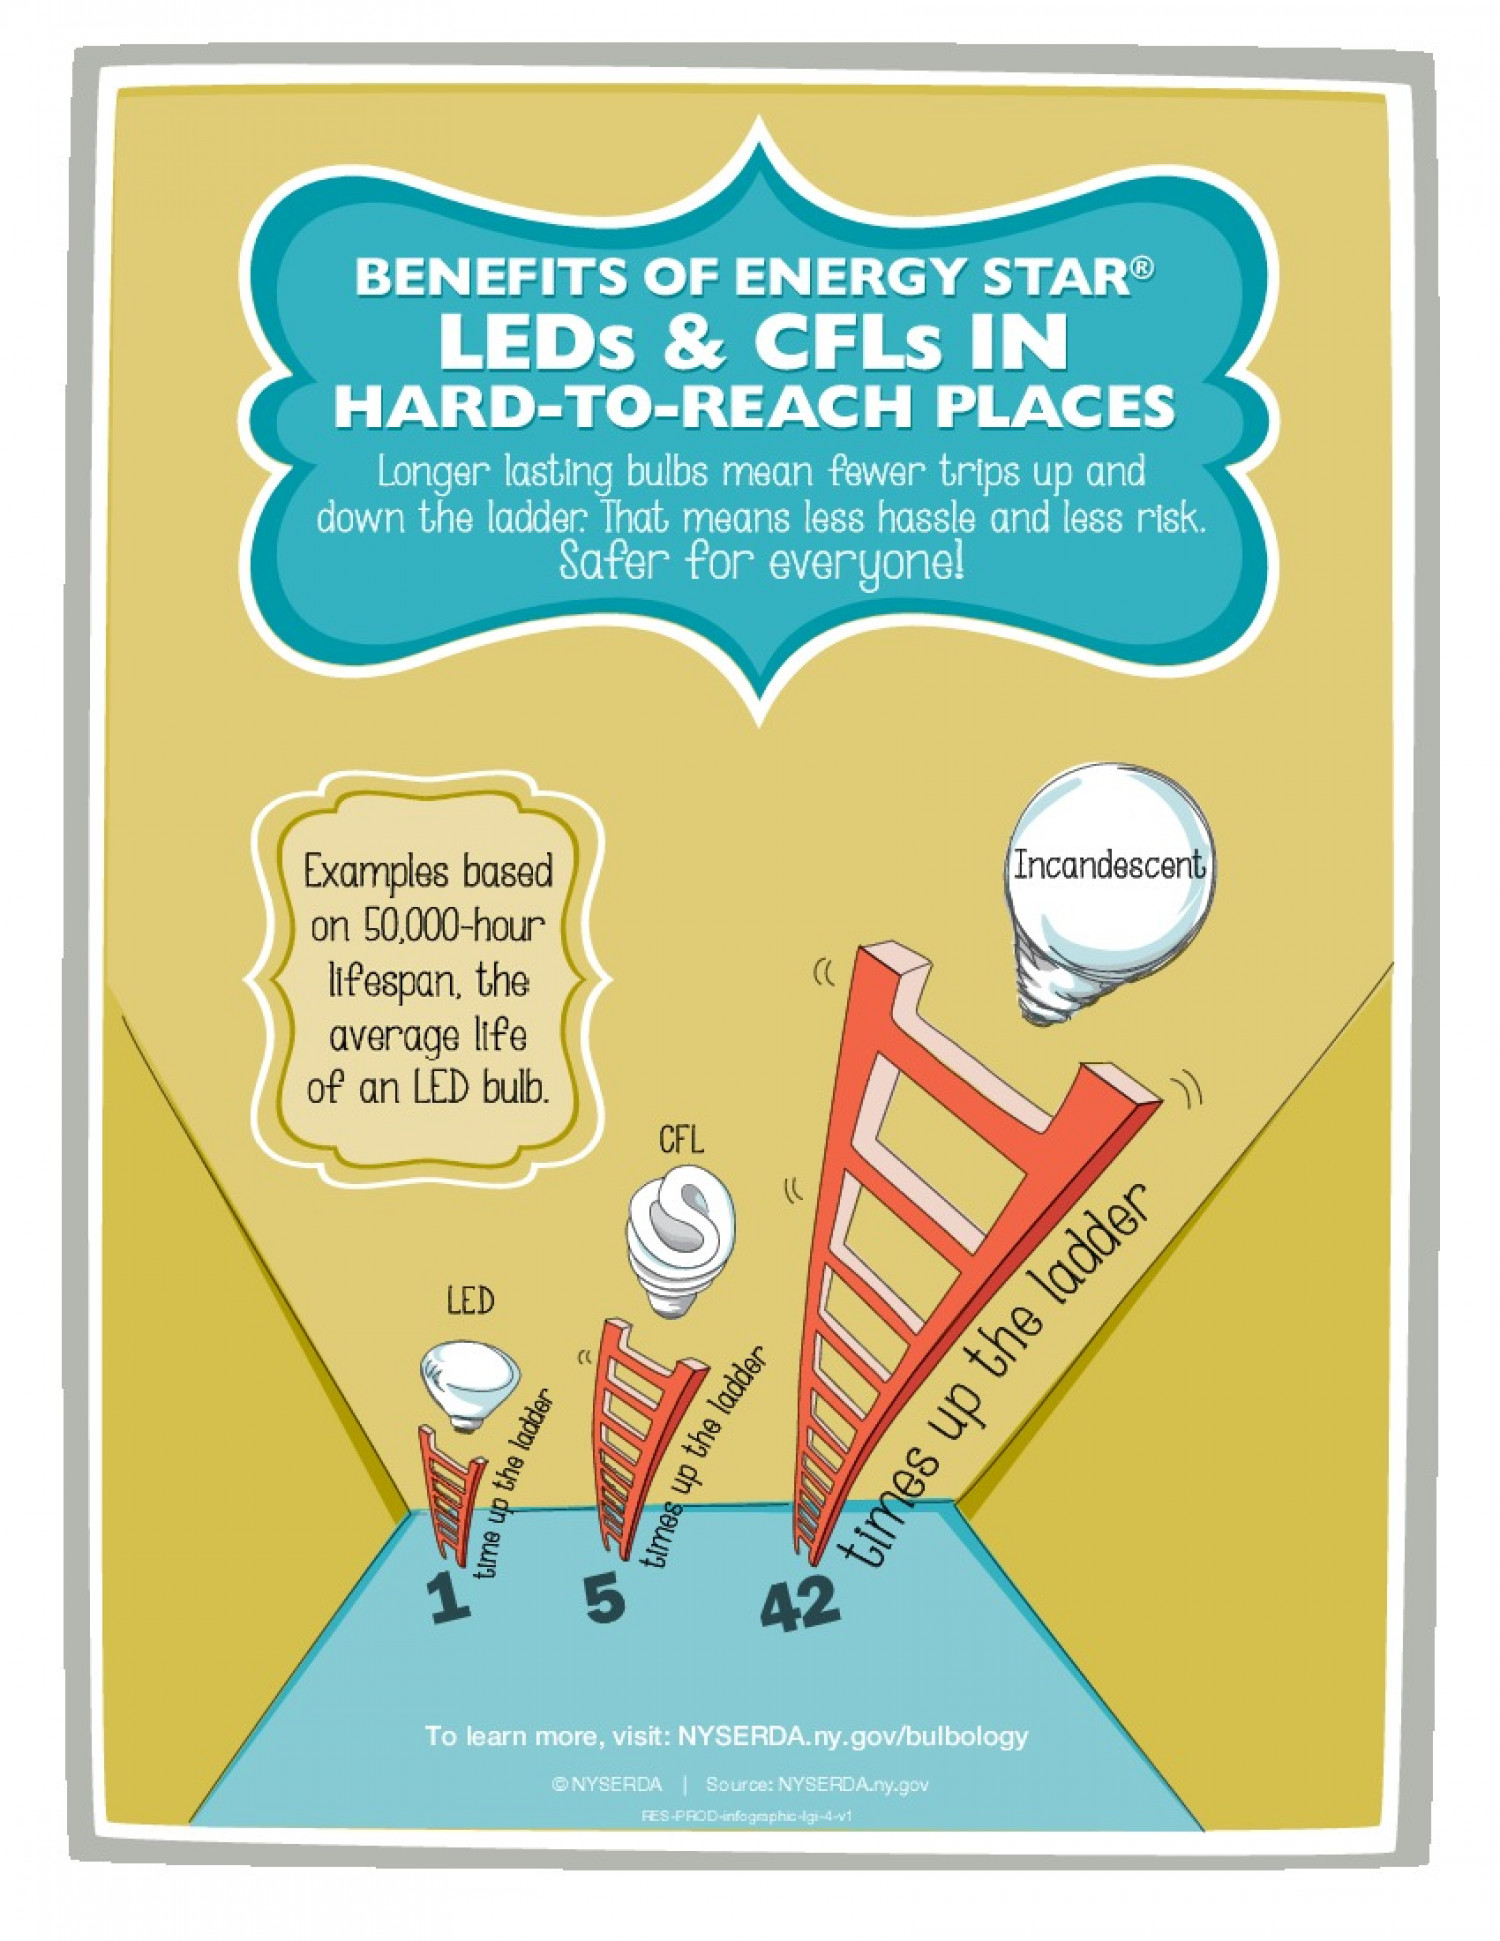 Benefits of ENERGY STAR LEDs and CFLS in Hard-to-Reach Places Infographic